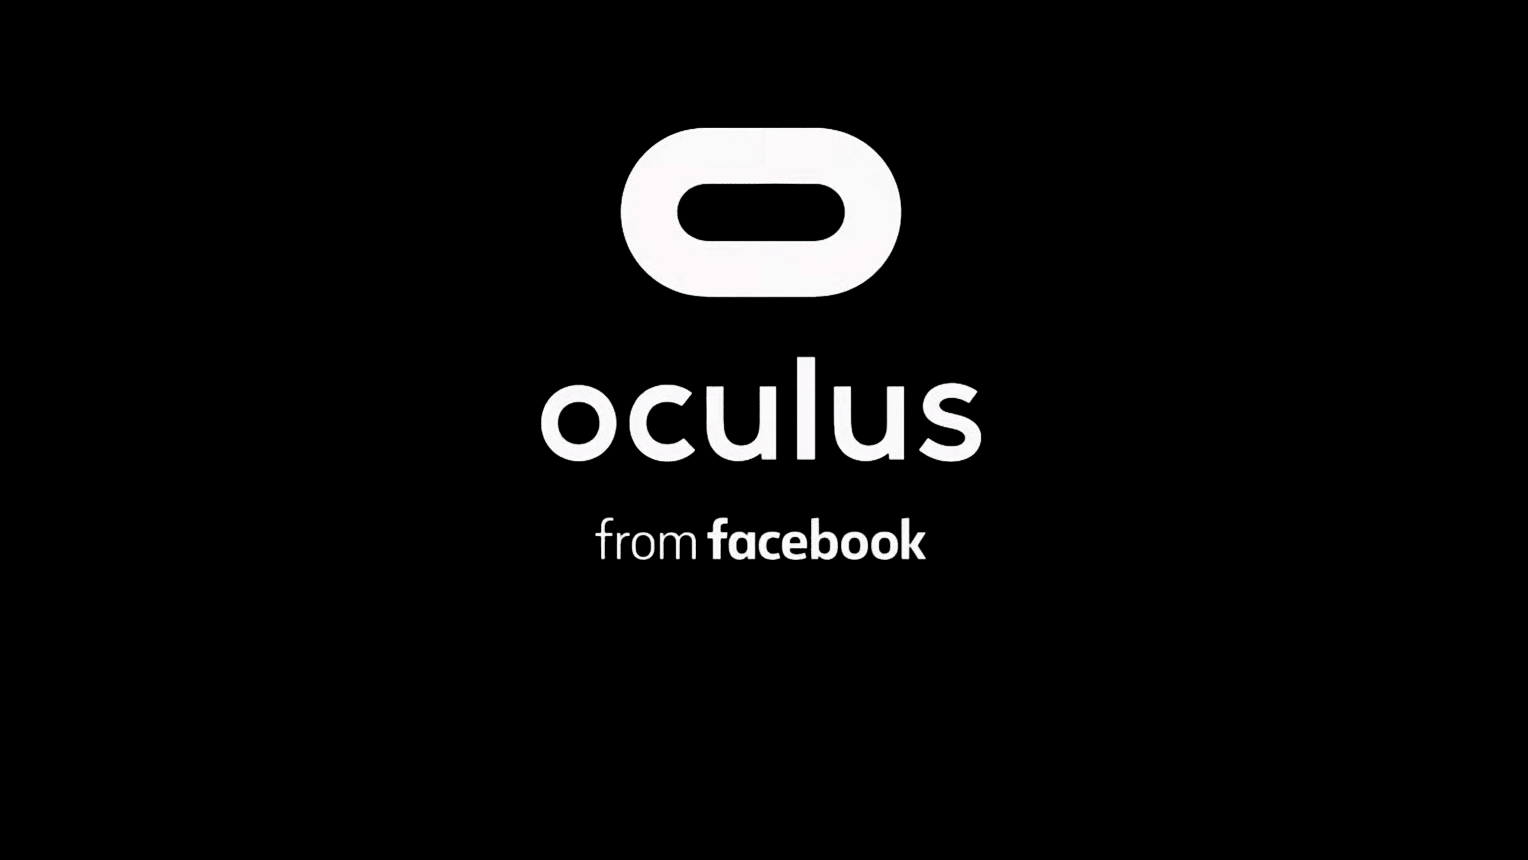 Germany begins legal action against Facebook for their Oculus login requirements